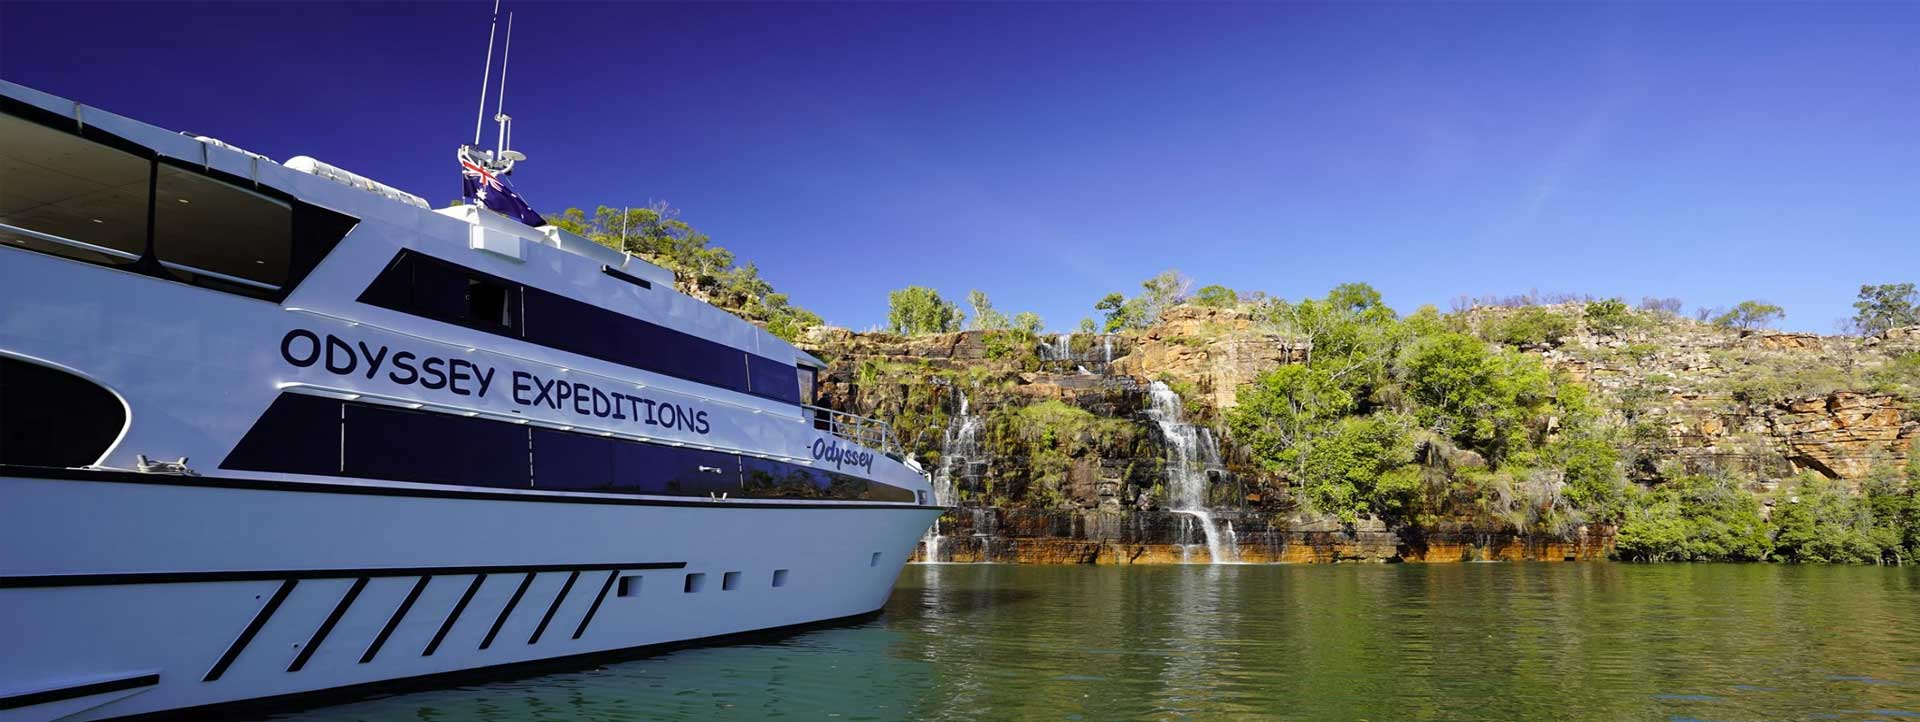 https://www.kimberleyboatcruises.com.au/wp-content/uploads/2020/08/ODYSSEY-EXPEDITIONS-side-profile-Kings-Cascades.jpg